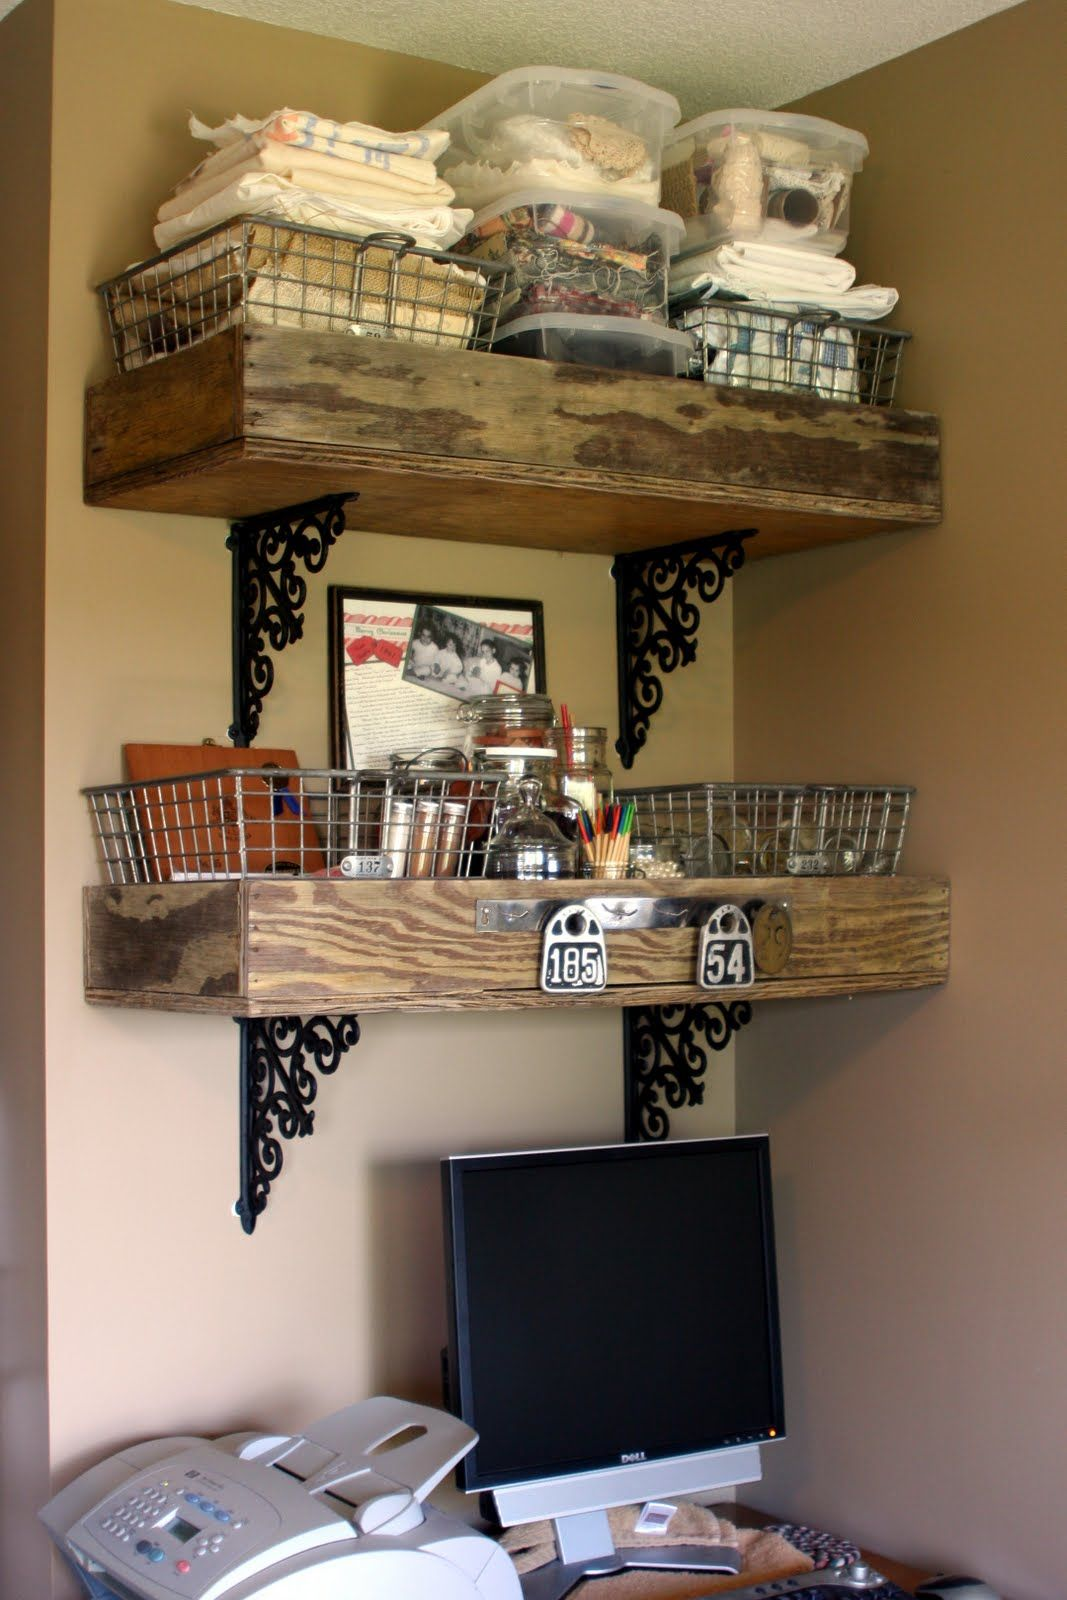 old drawers turned into shelves Dresser drawer shelves